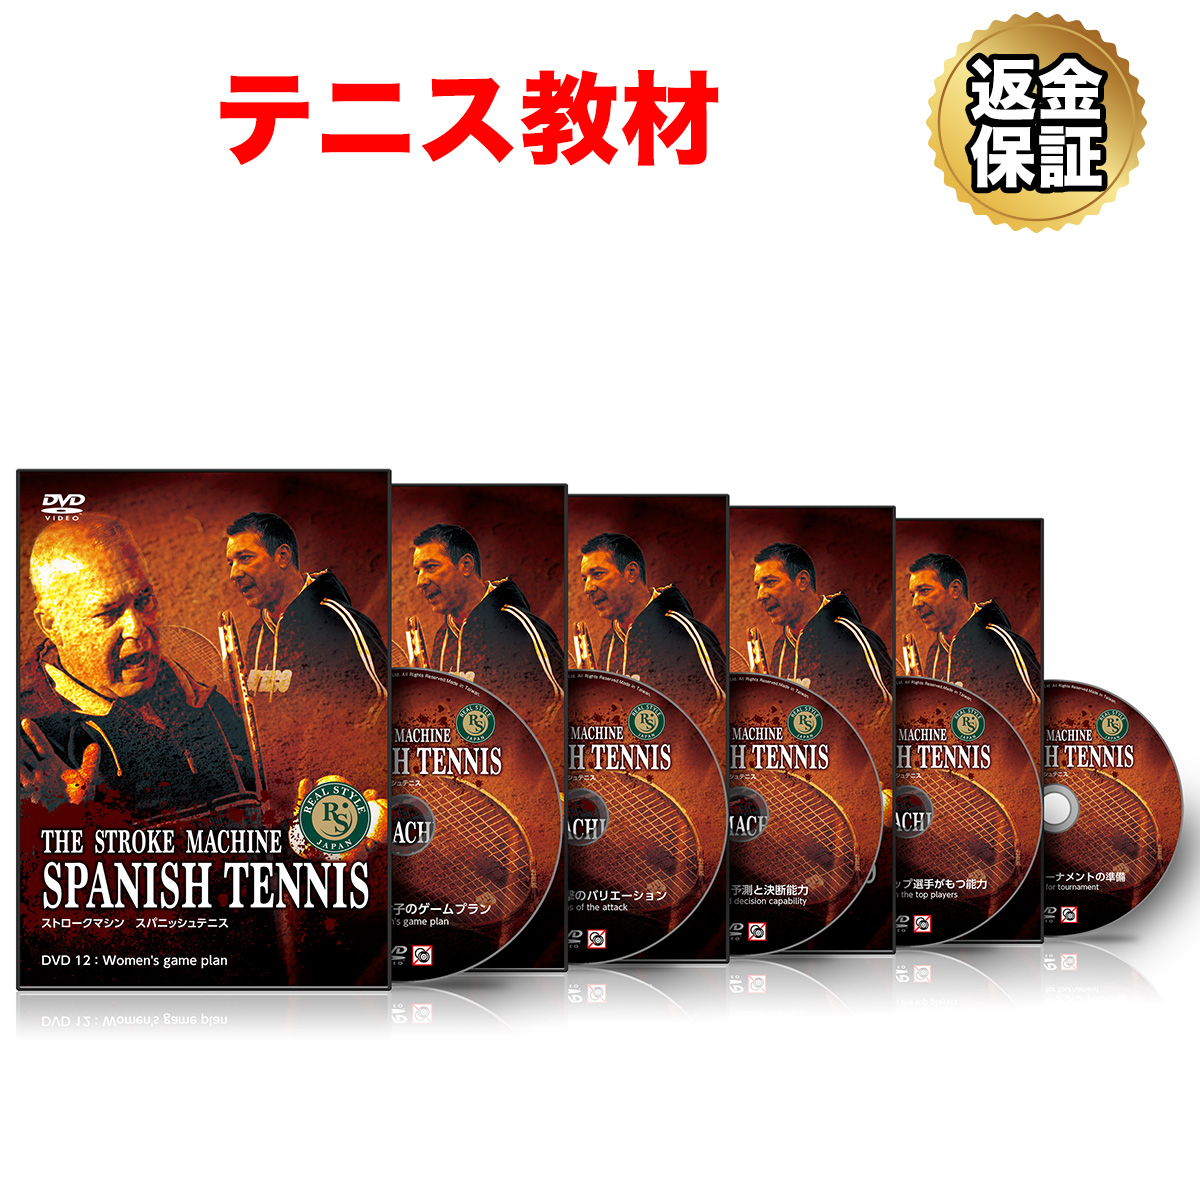 【テニス】THE STROKE MACHINE SPANISH TENNIS Disc12~16